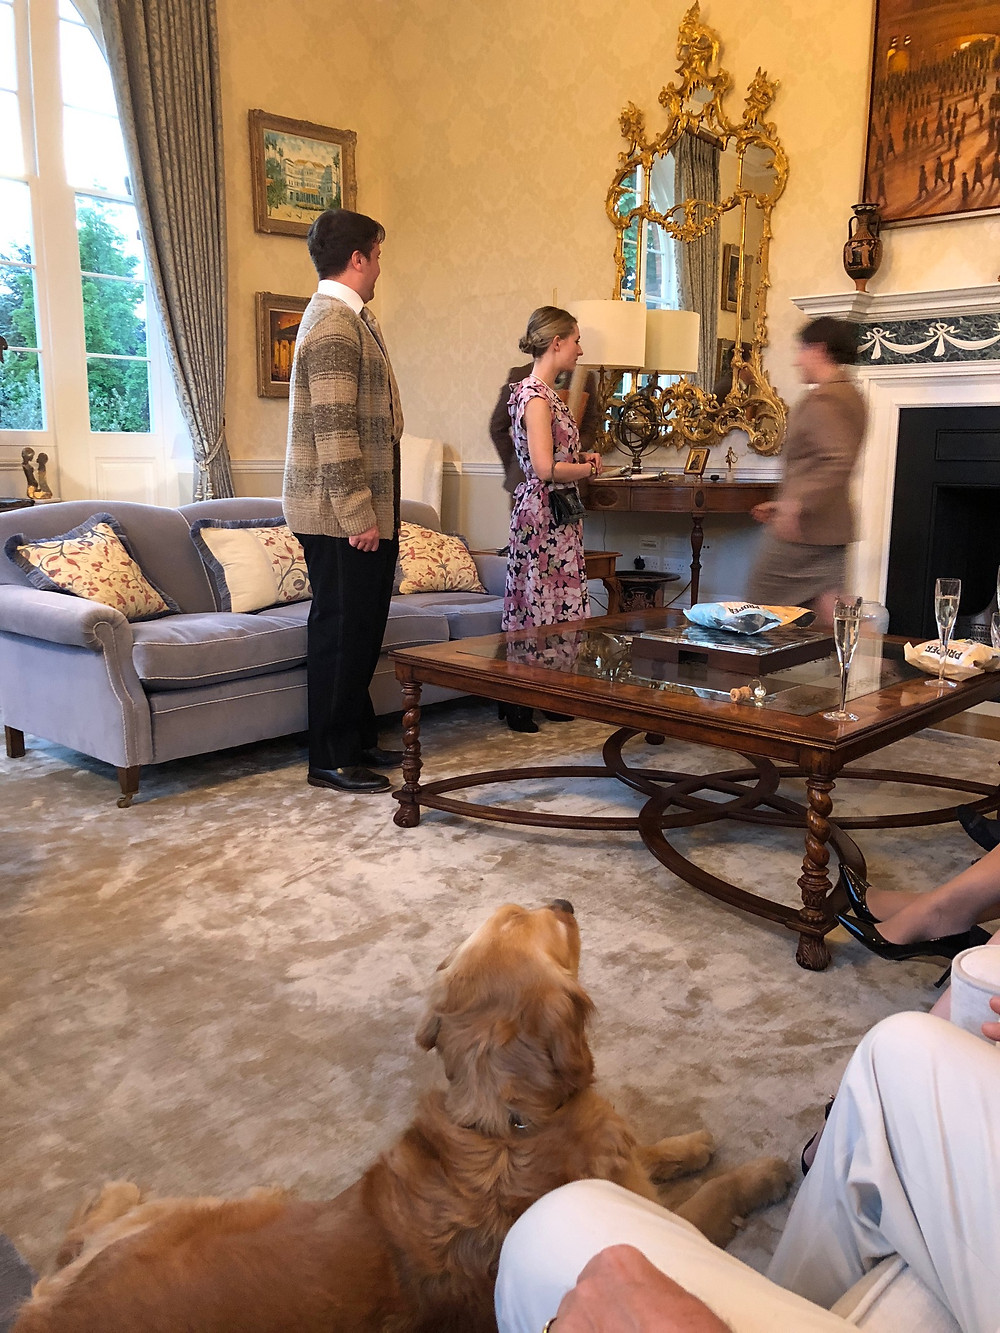 Actors perform Noel Coward in a drawing room with elegant gold mirror and a dog watches on